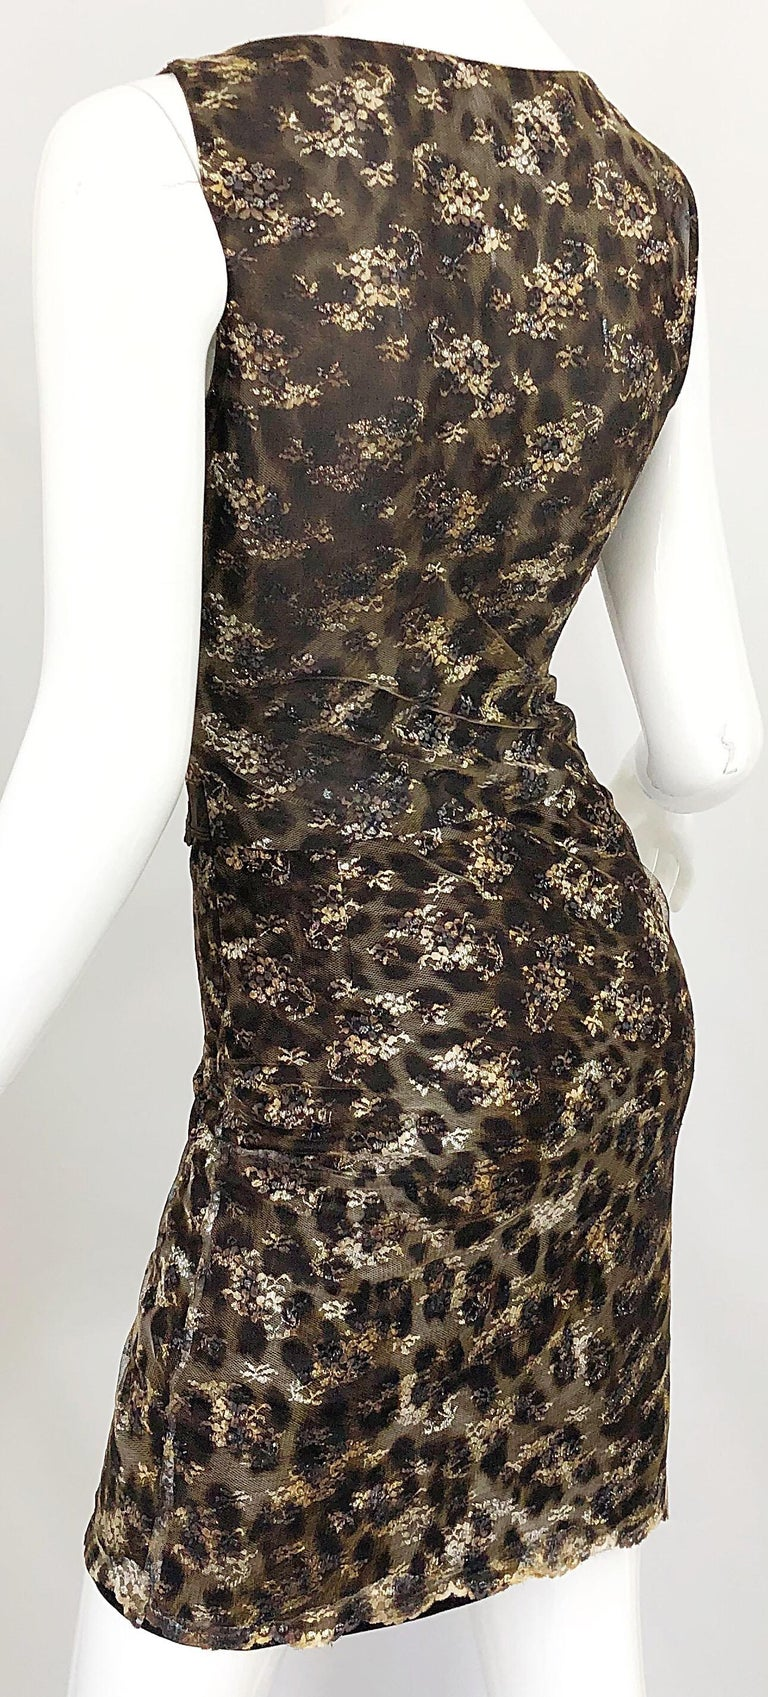 Gai Mattiolo 1990s Sexy Semi Sheer Leopard Brown Metallic Vintage 90s Dress For Sale 3